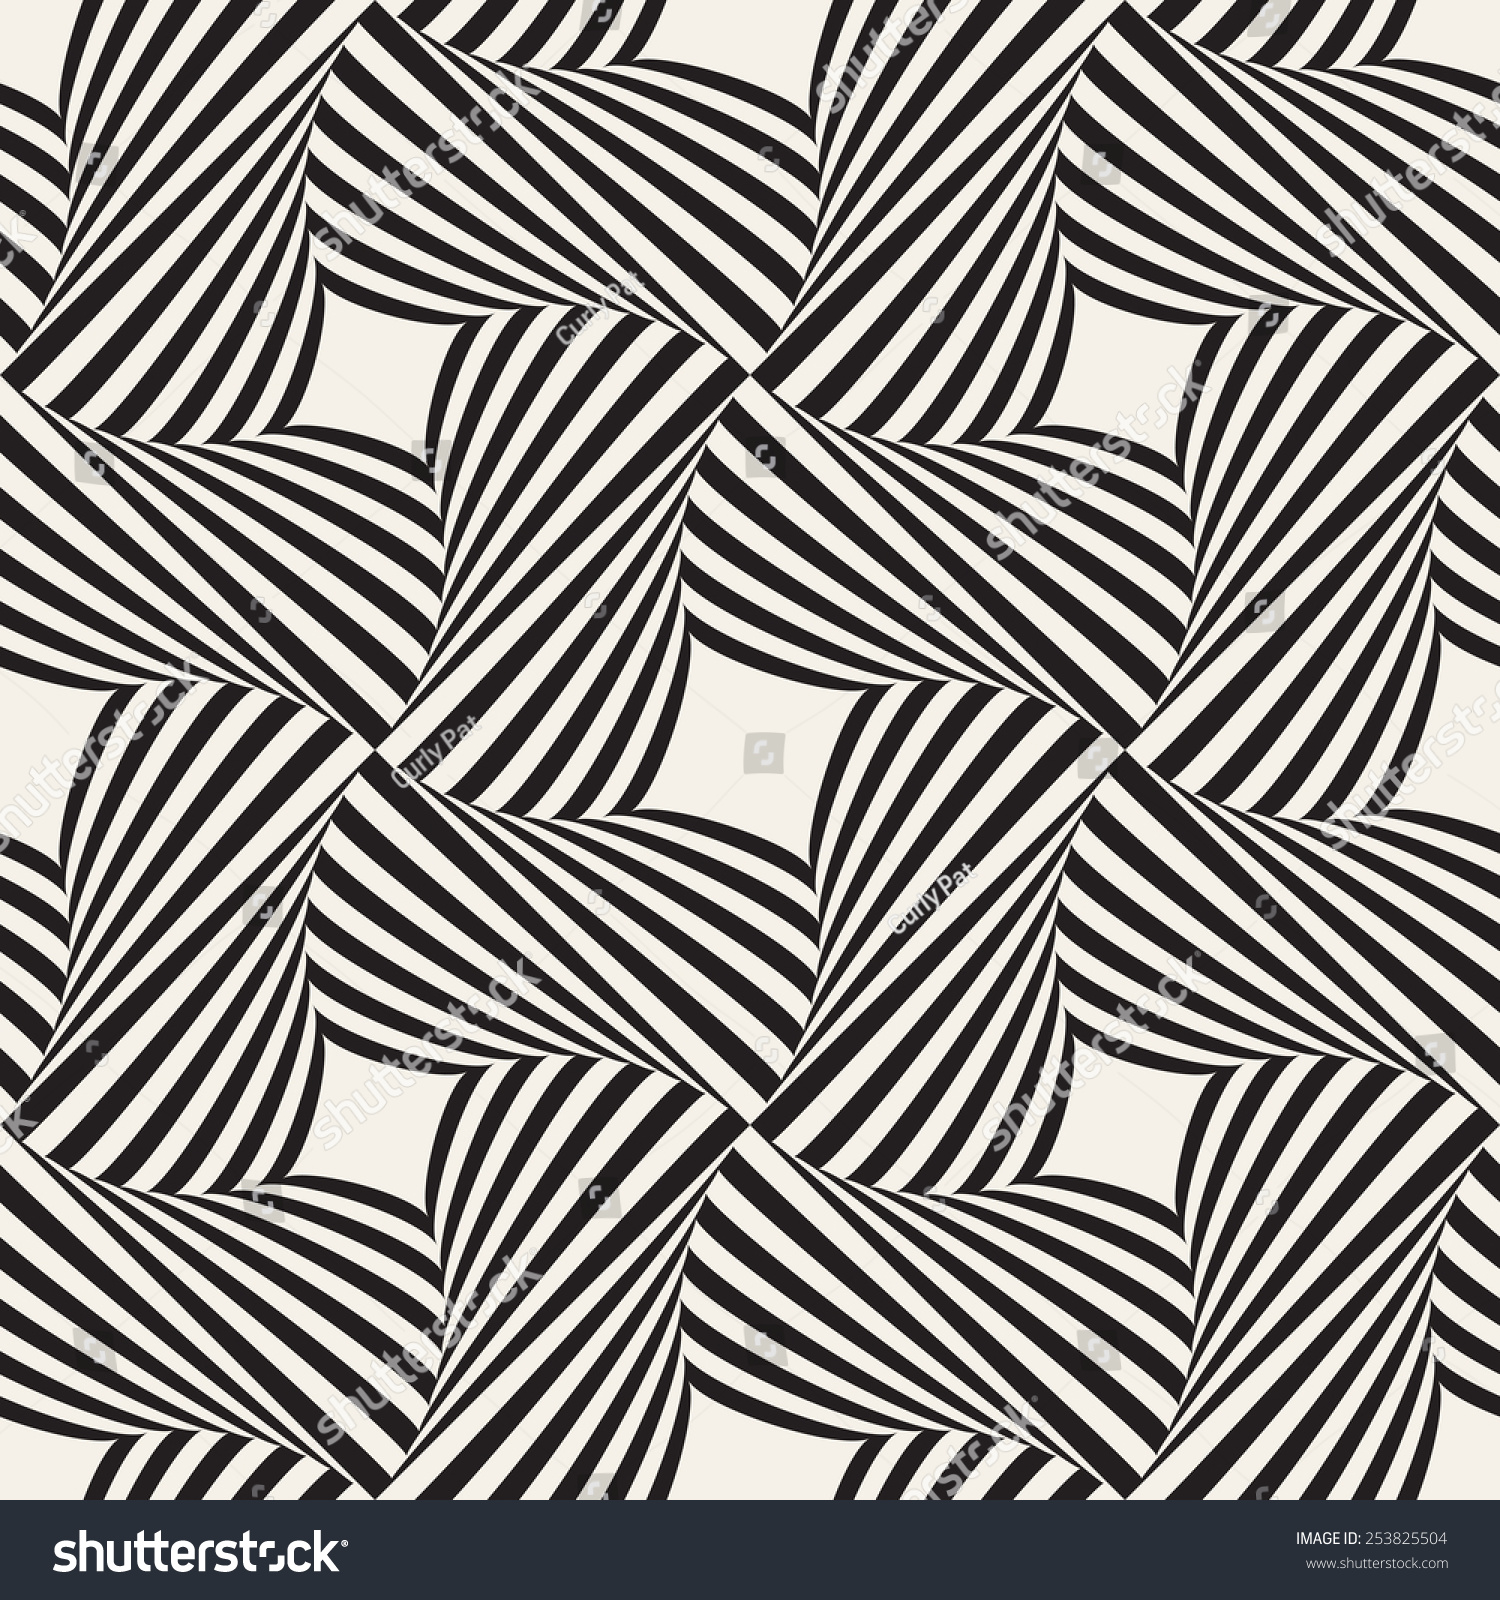 Vector seamless pattern geometric intertwined bands for A decoration that is twisted intertwined or curled